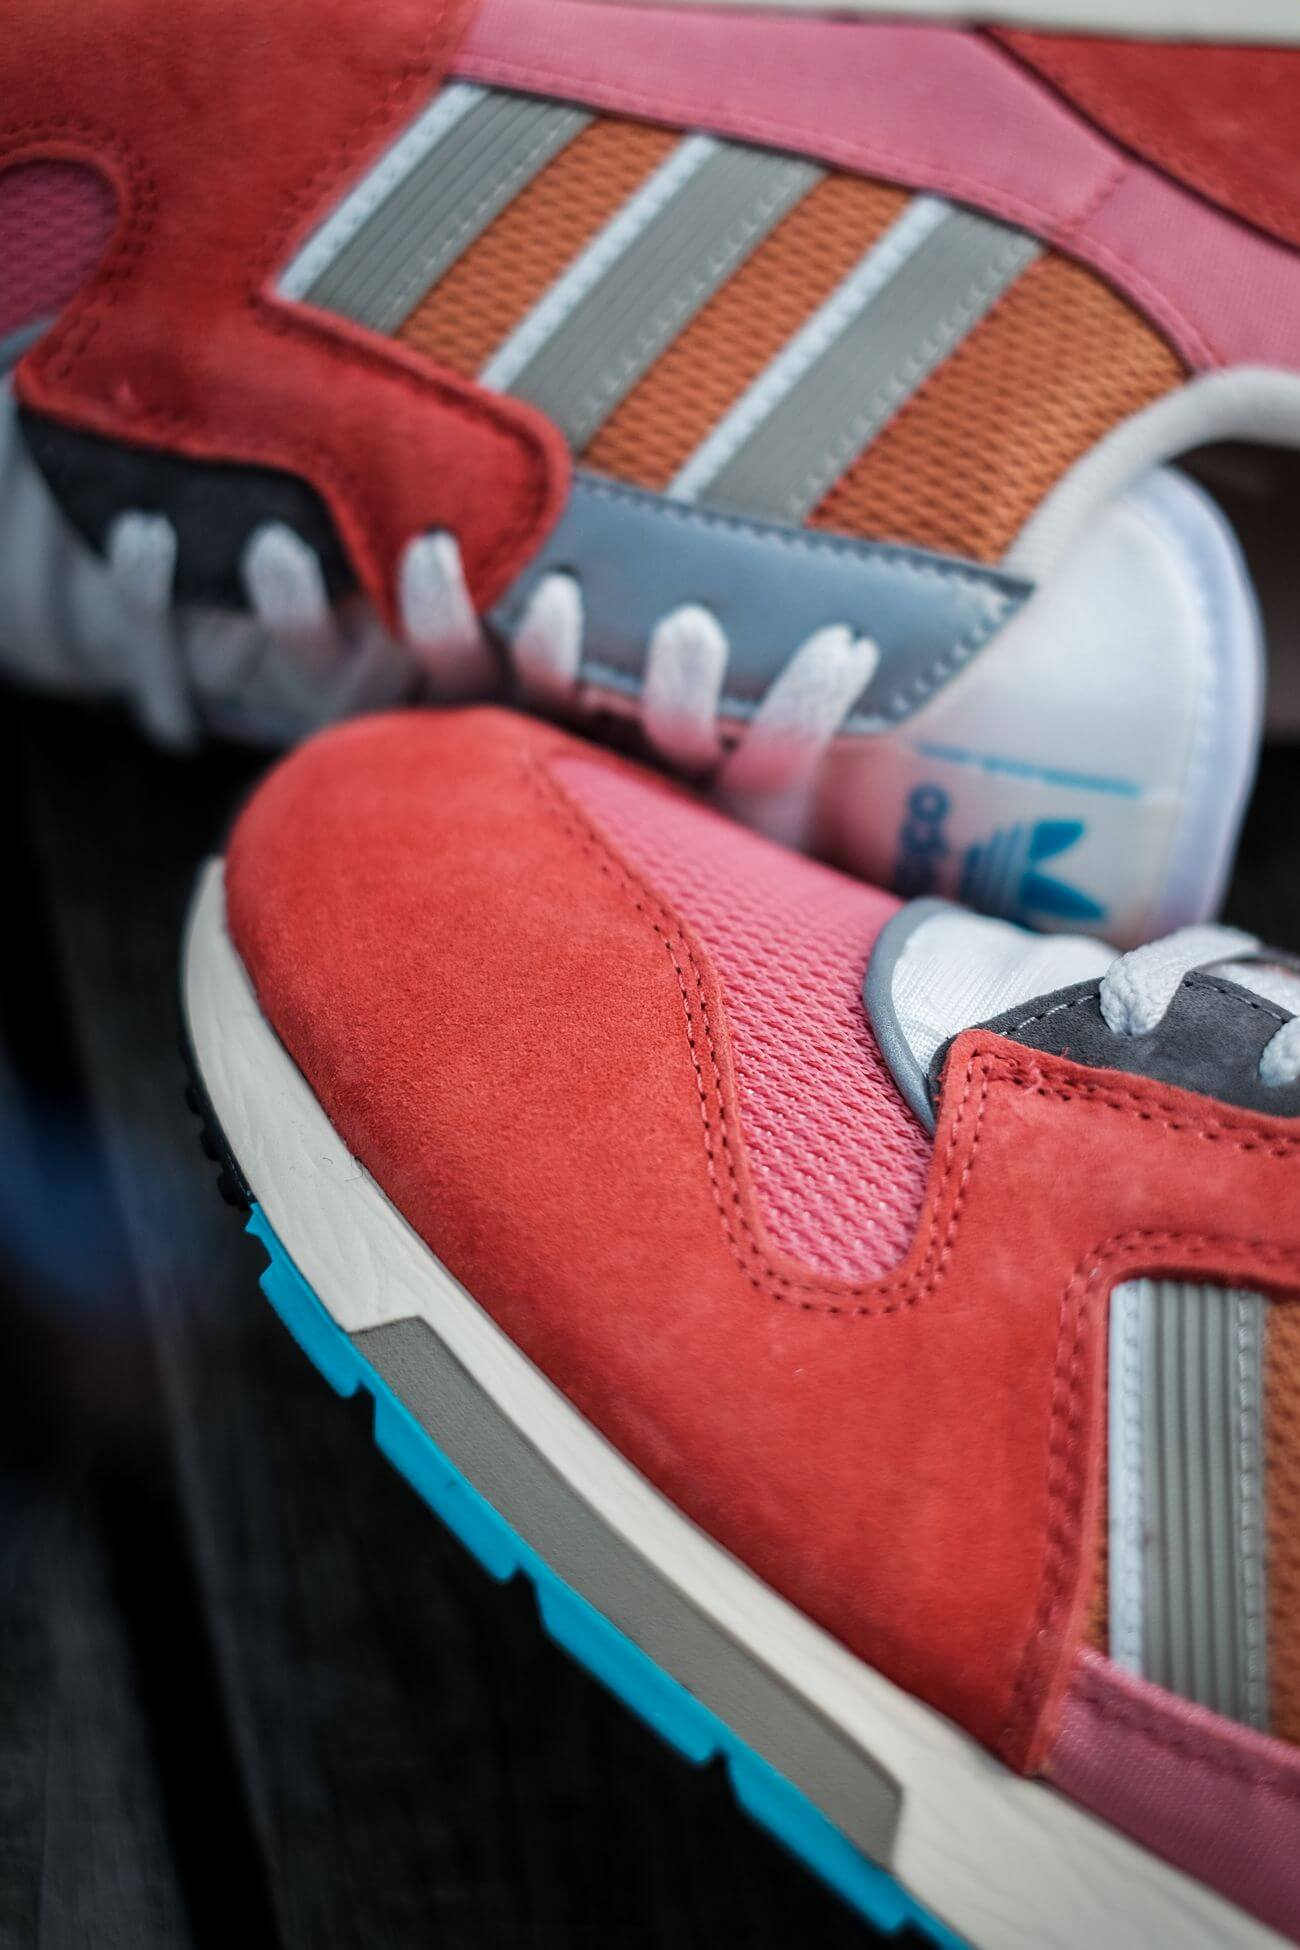 sneaker toe box - adidas - ZX 420 - crew red/ambient blush/cream white - H02128